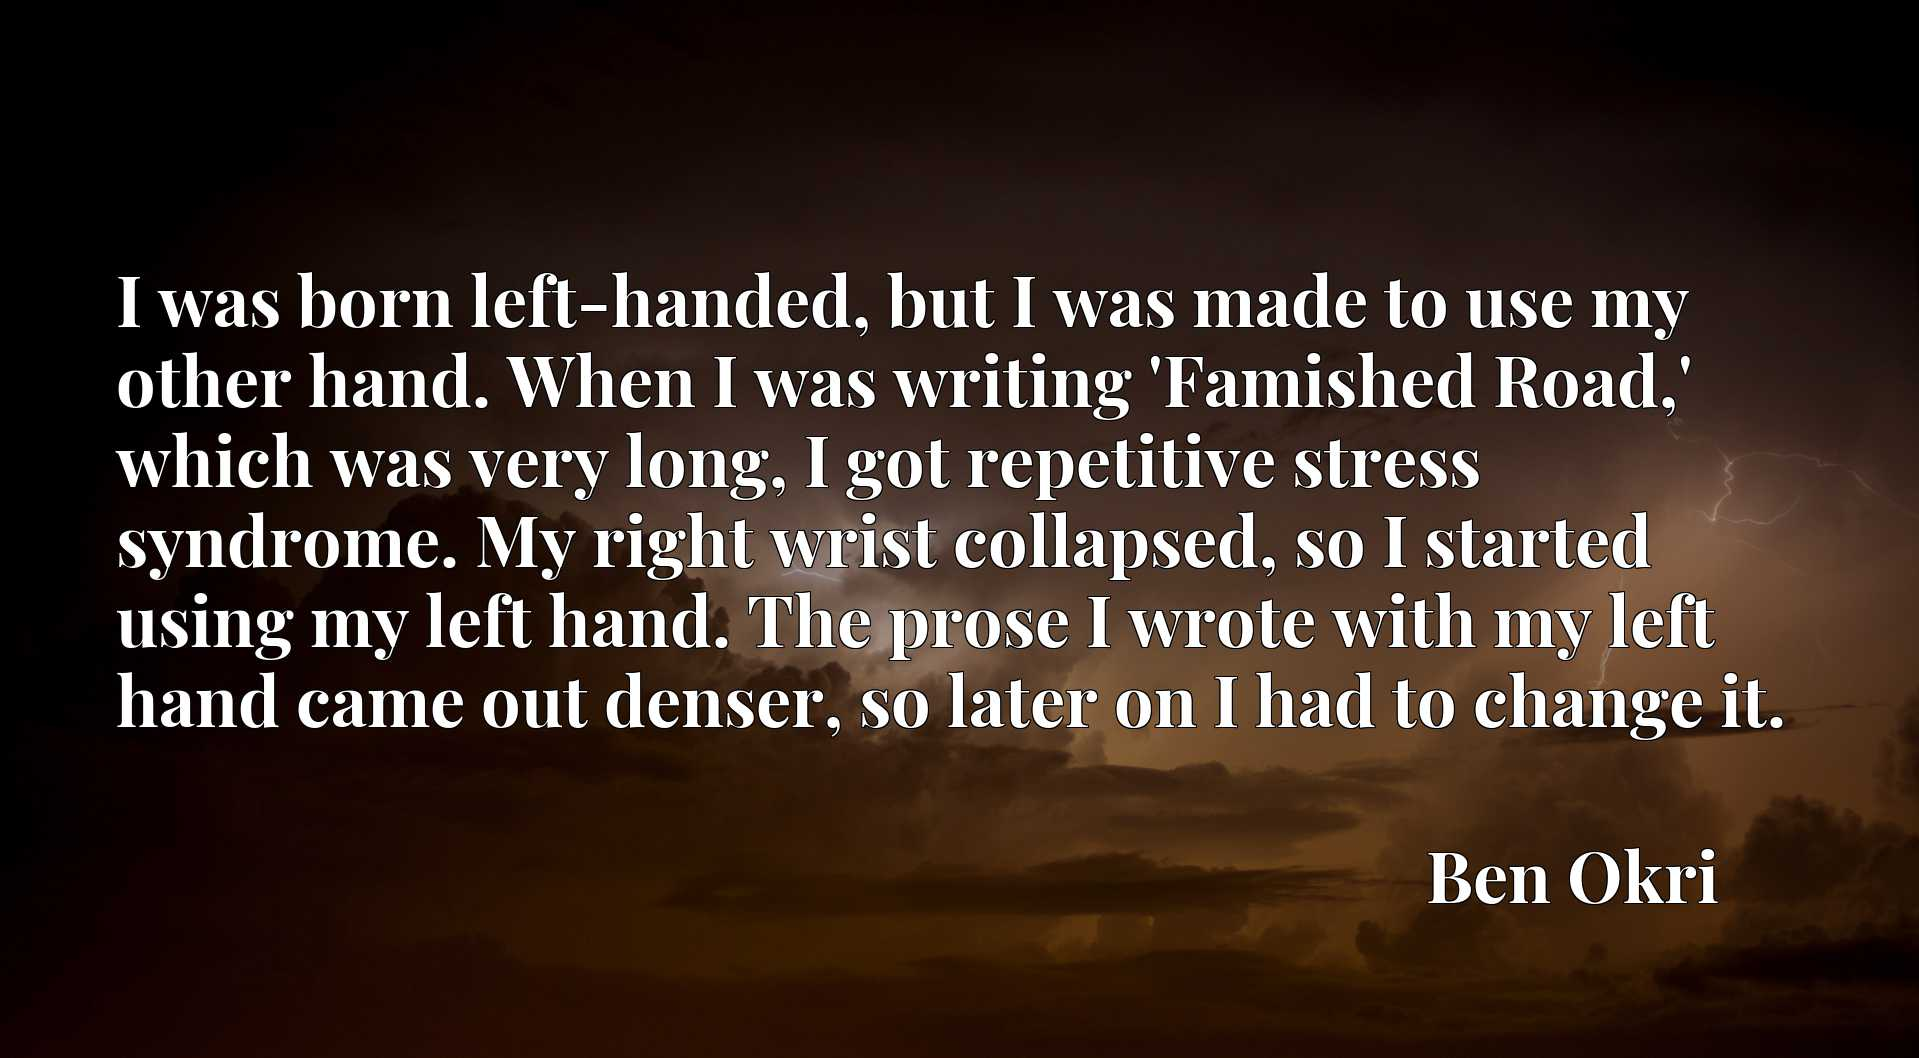 I was born left-handed, but I was made to use my other hand. When I was writing 'Famished Road,' which was very long, I got repetitive stress syndrome. My right wrist collapsed, so I started using my left hand. The prose I wrote with my left hand came out denser, so later on I had to change it.